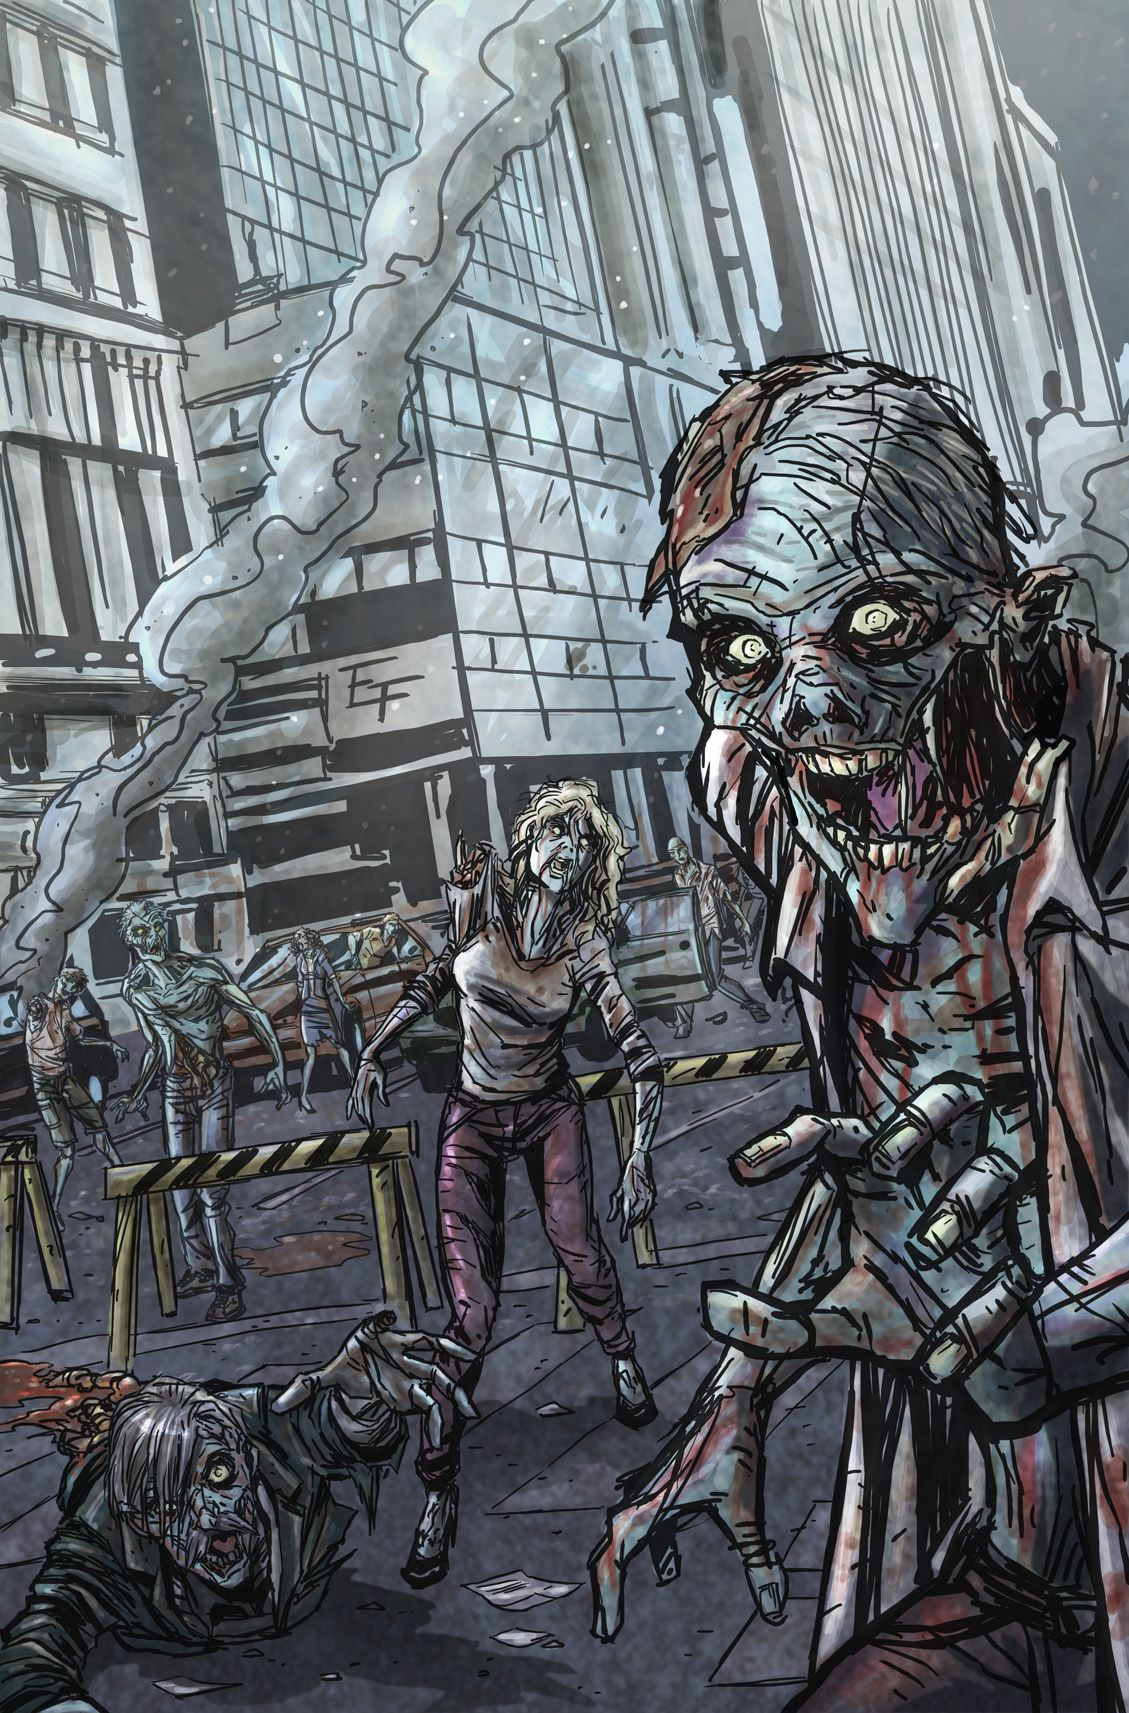 Zombies Cityscape Drawing Just Drawings Zombie Drawings Zombie